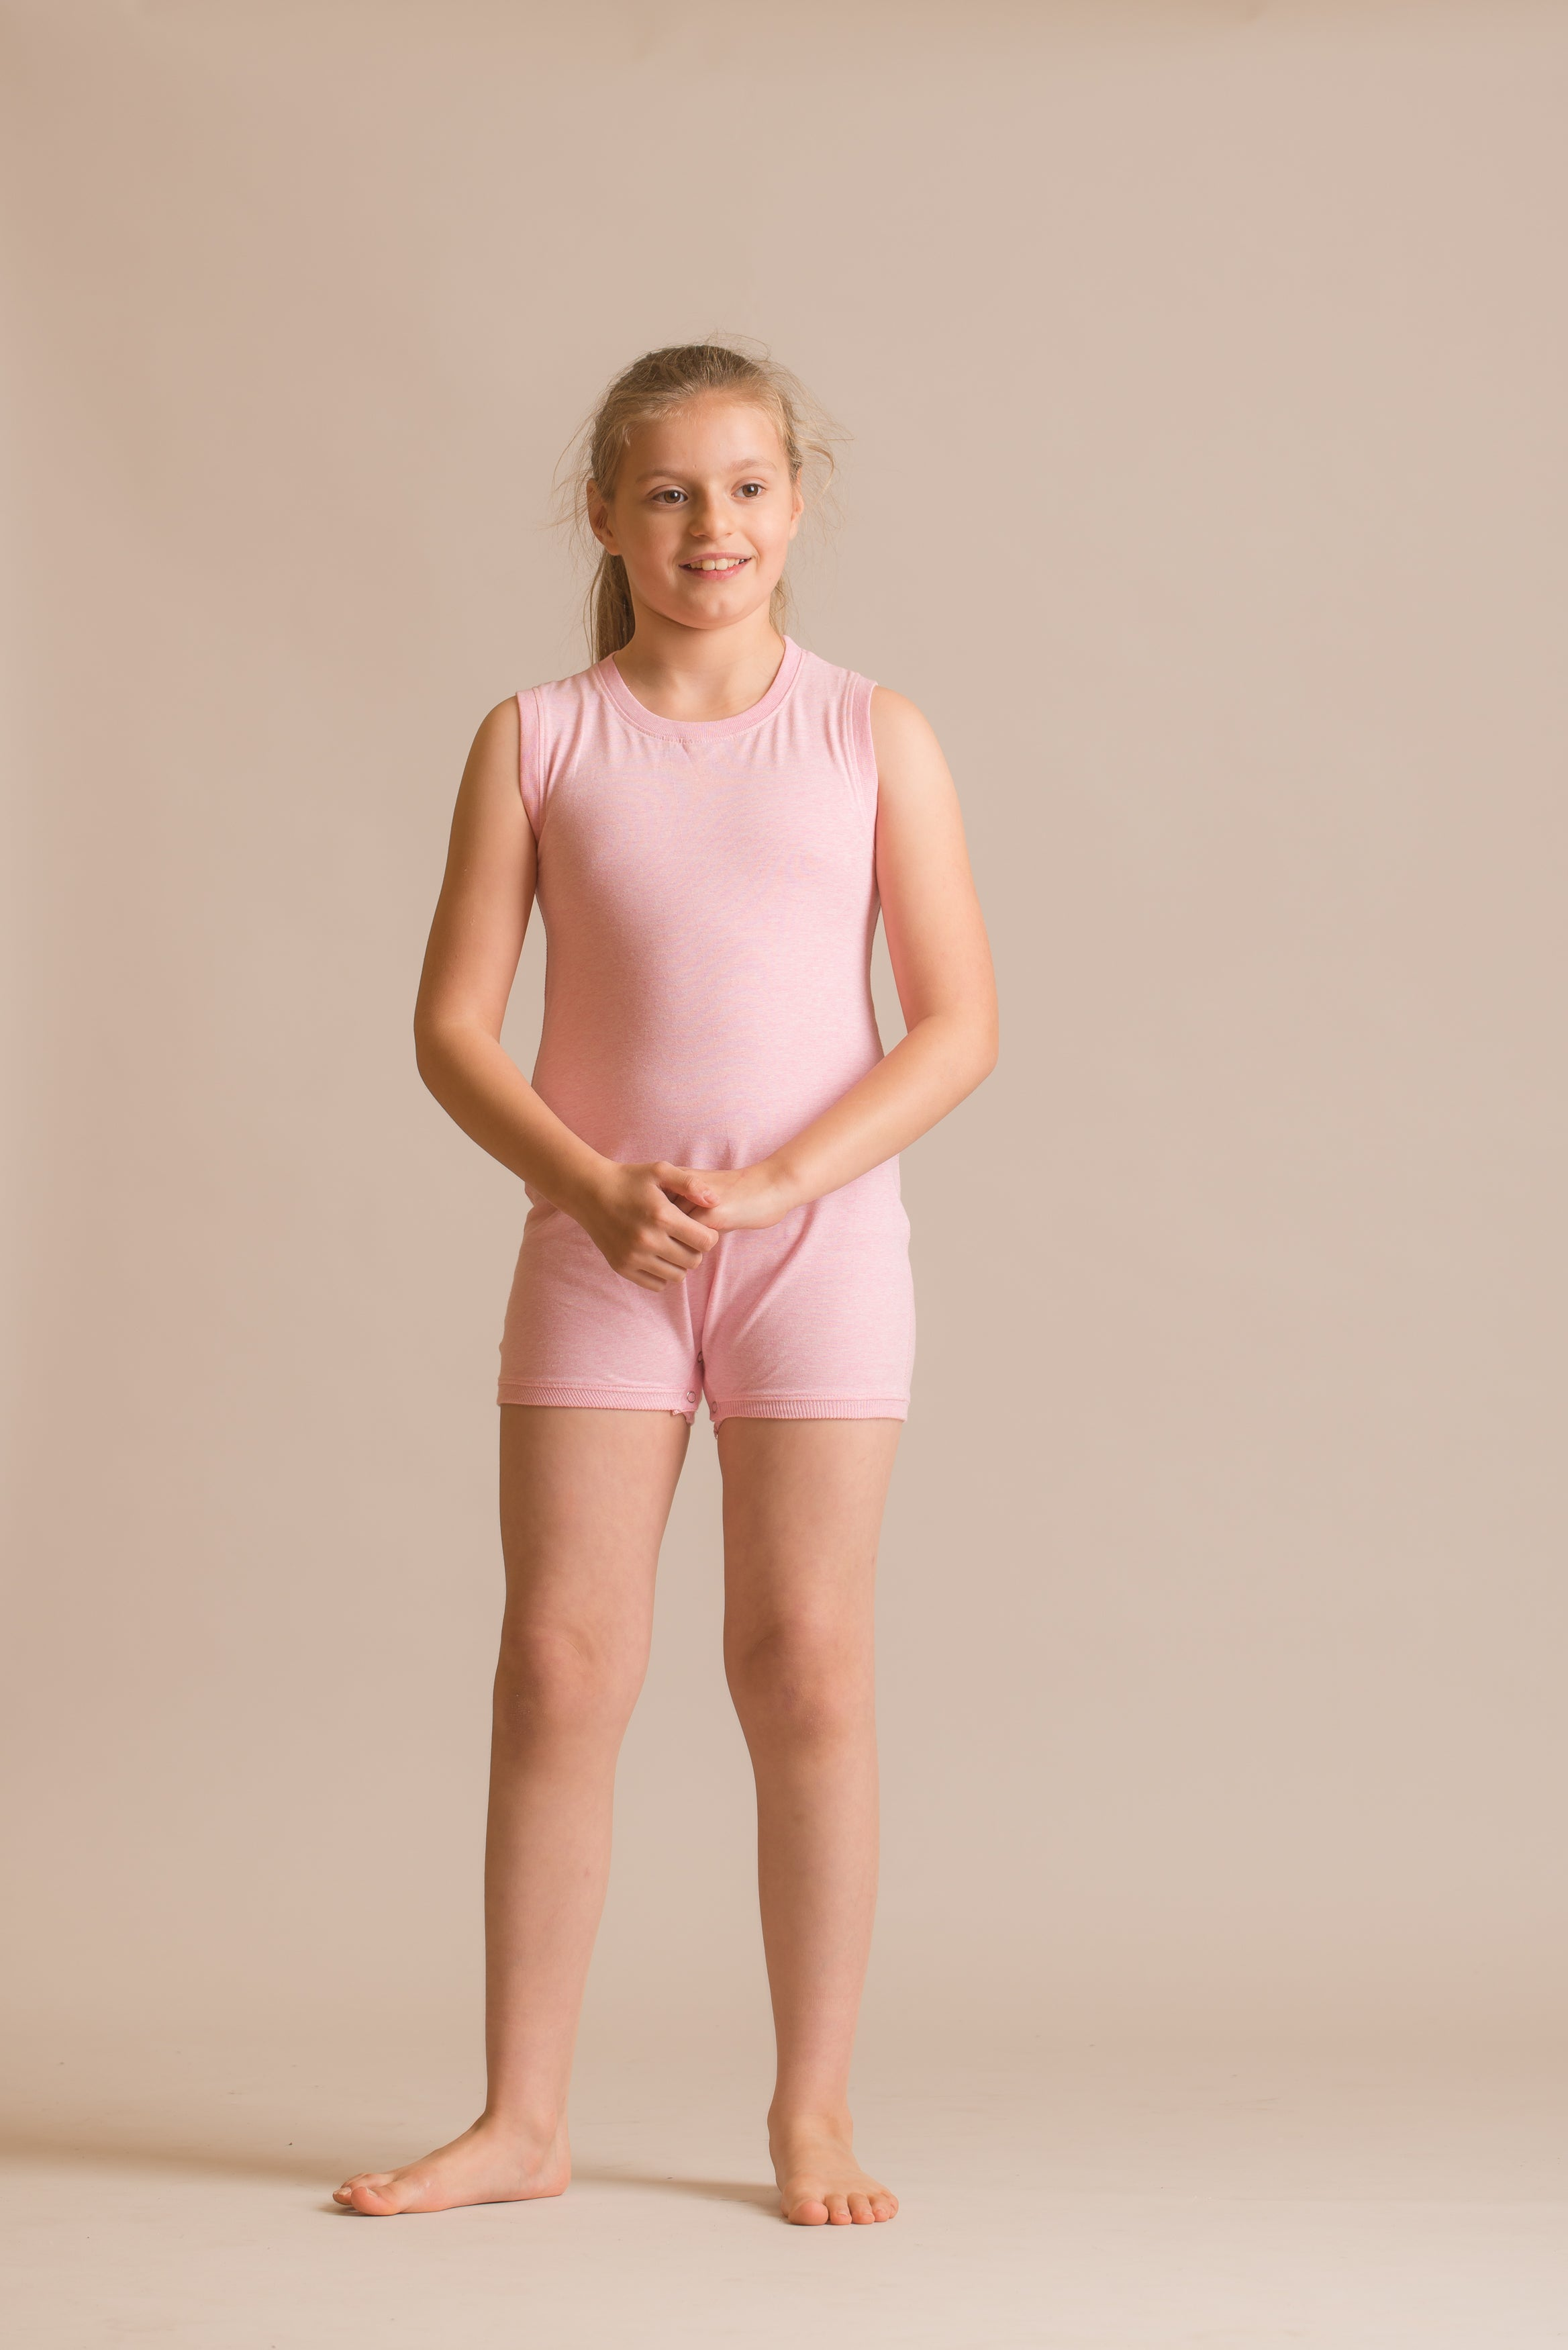 SLEEVELESS Bodysuit for Boys /& Girls by KayCey Special Needs Clothing w// TUBE ACCESS for Older Children 2-16 yrs old